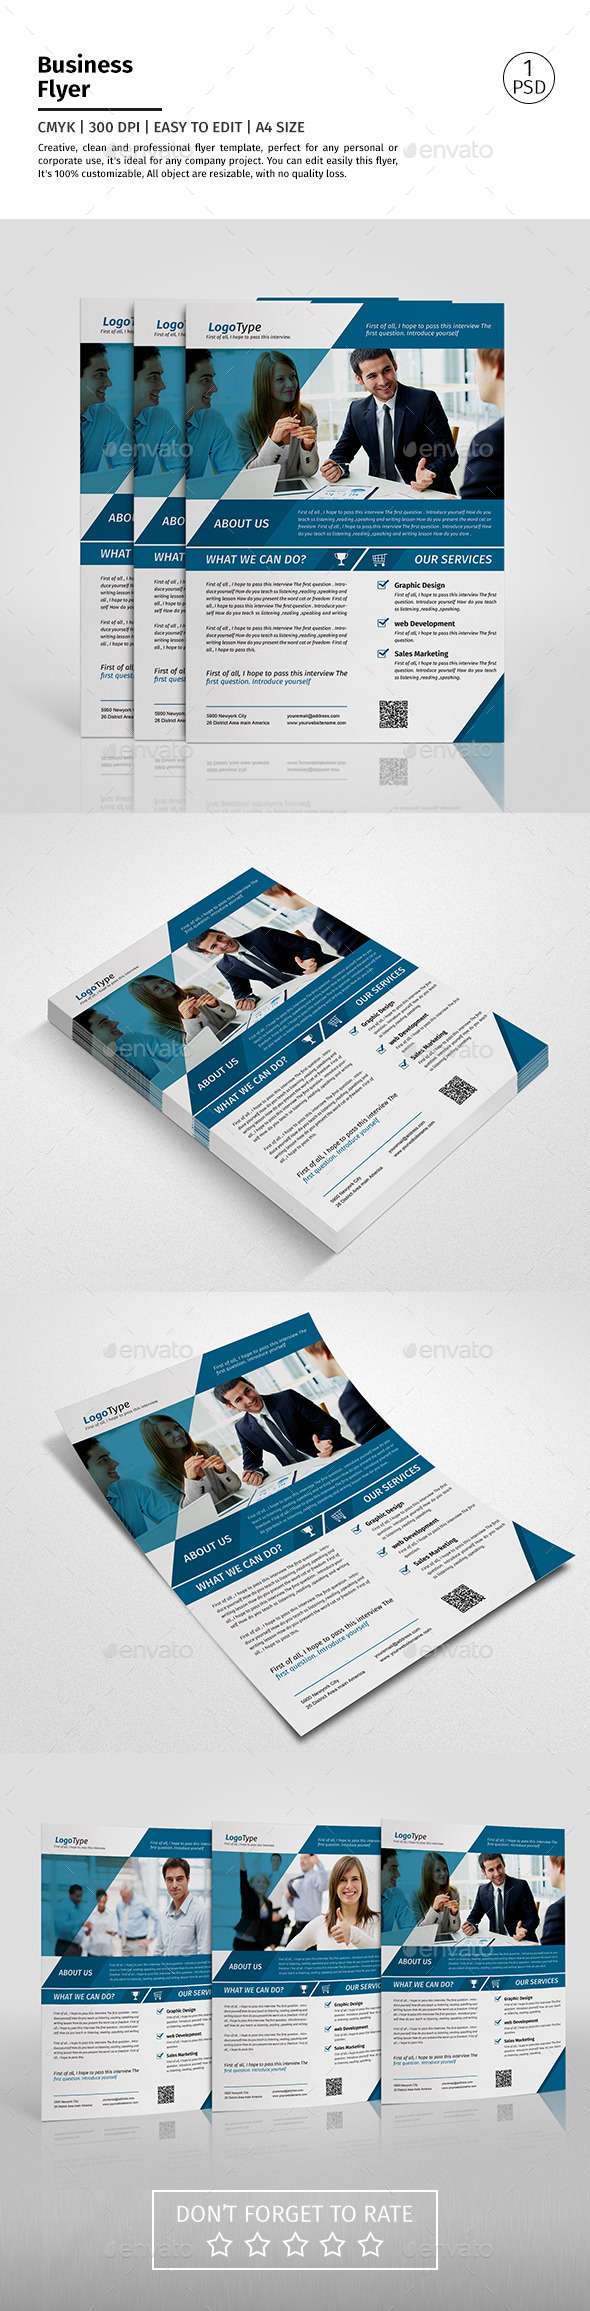 A4 Corporate Business Flyer Template Vol 05